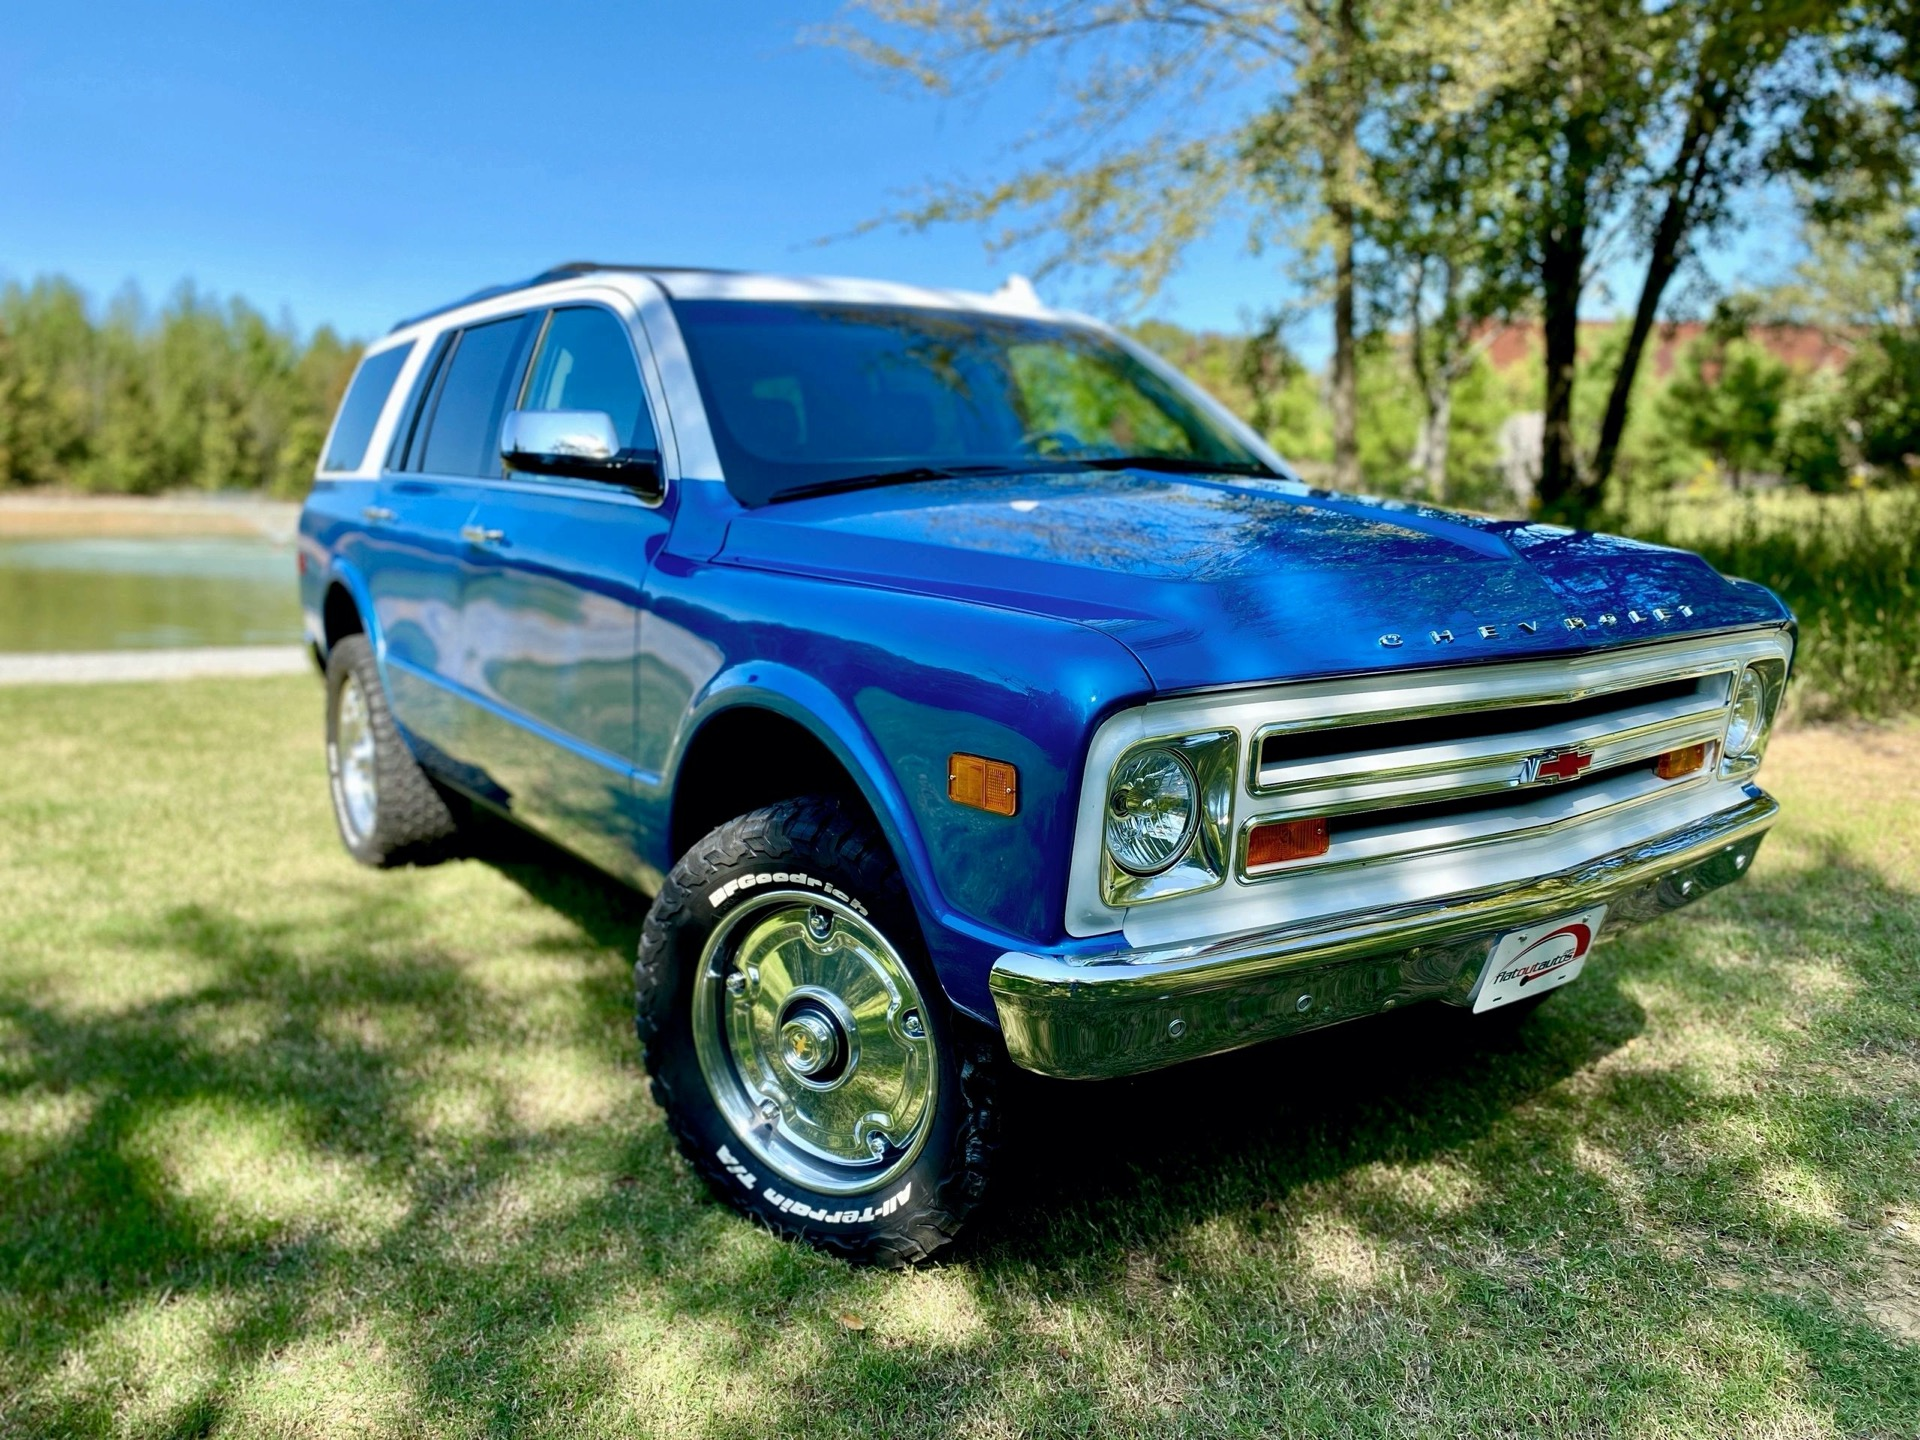 Flat Out Autos, a tune-up shop based in Northern Arkansas, has rolled out four Chevrolet Tahoe SUVs stylized after the classical Chevrolet K5 Blazer. The quartet will be heading to the UAE to the royal family that ordered it, but you can commission a similar job.